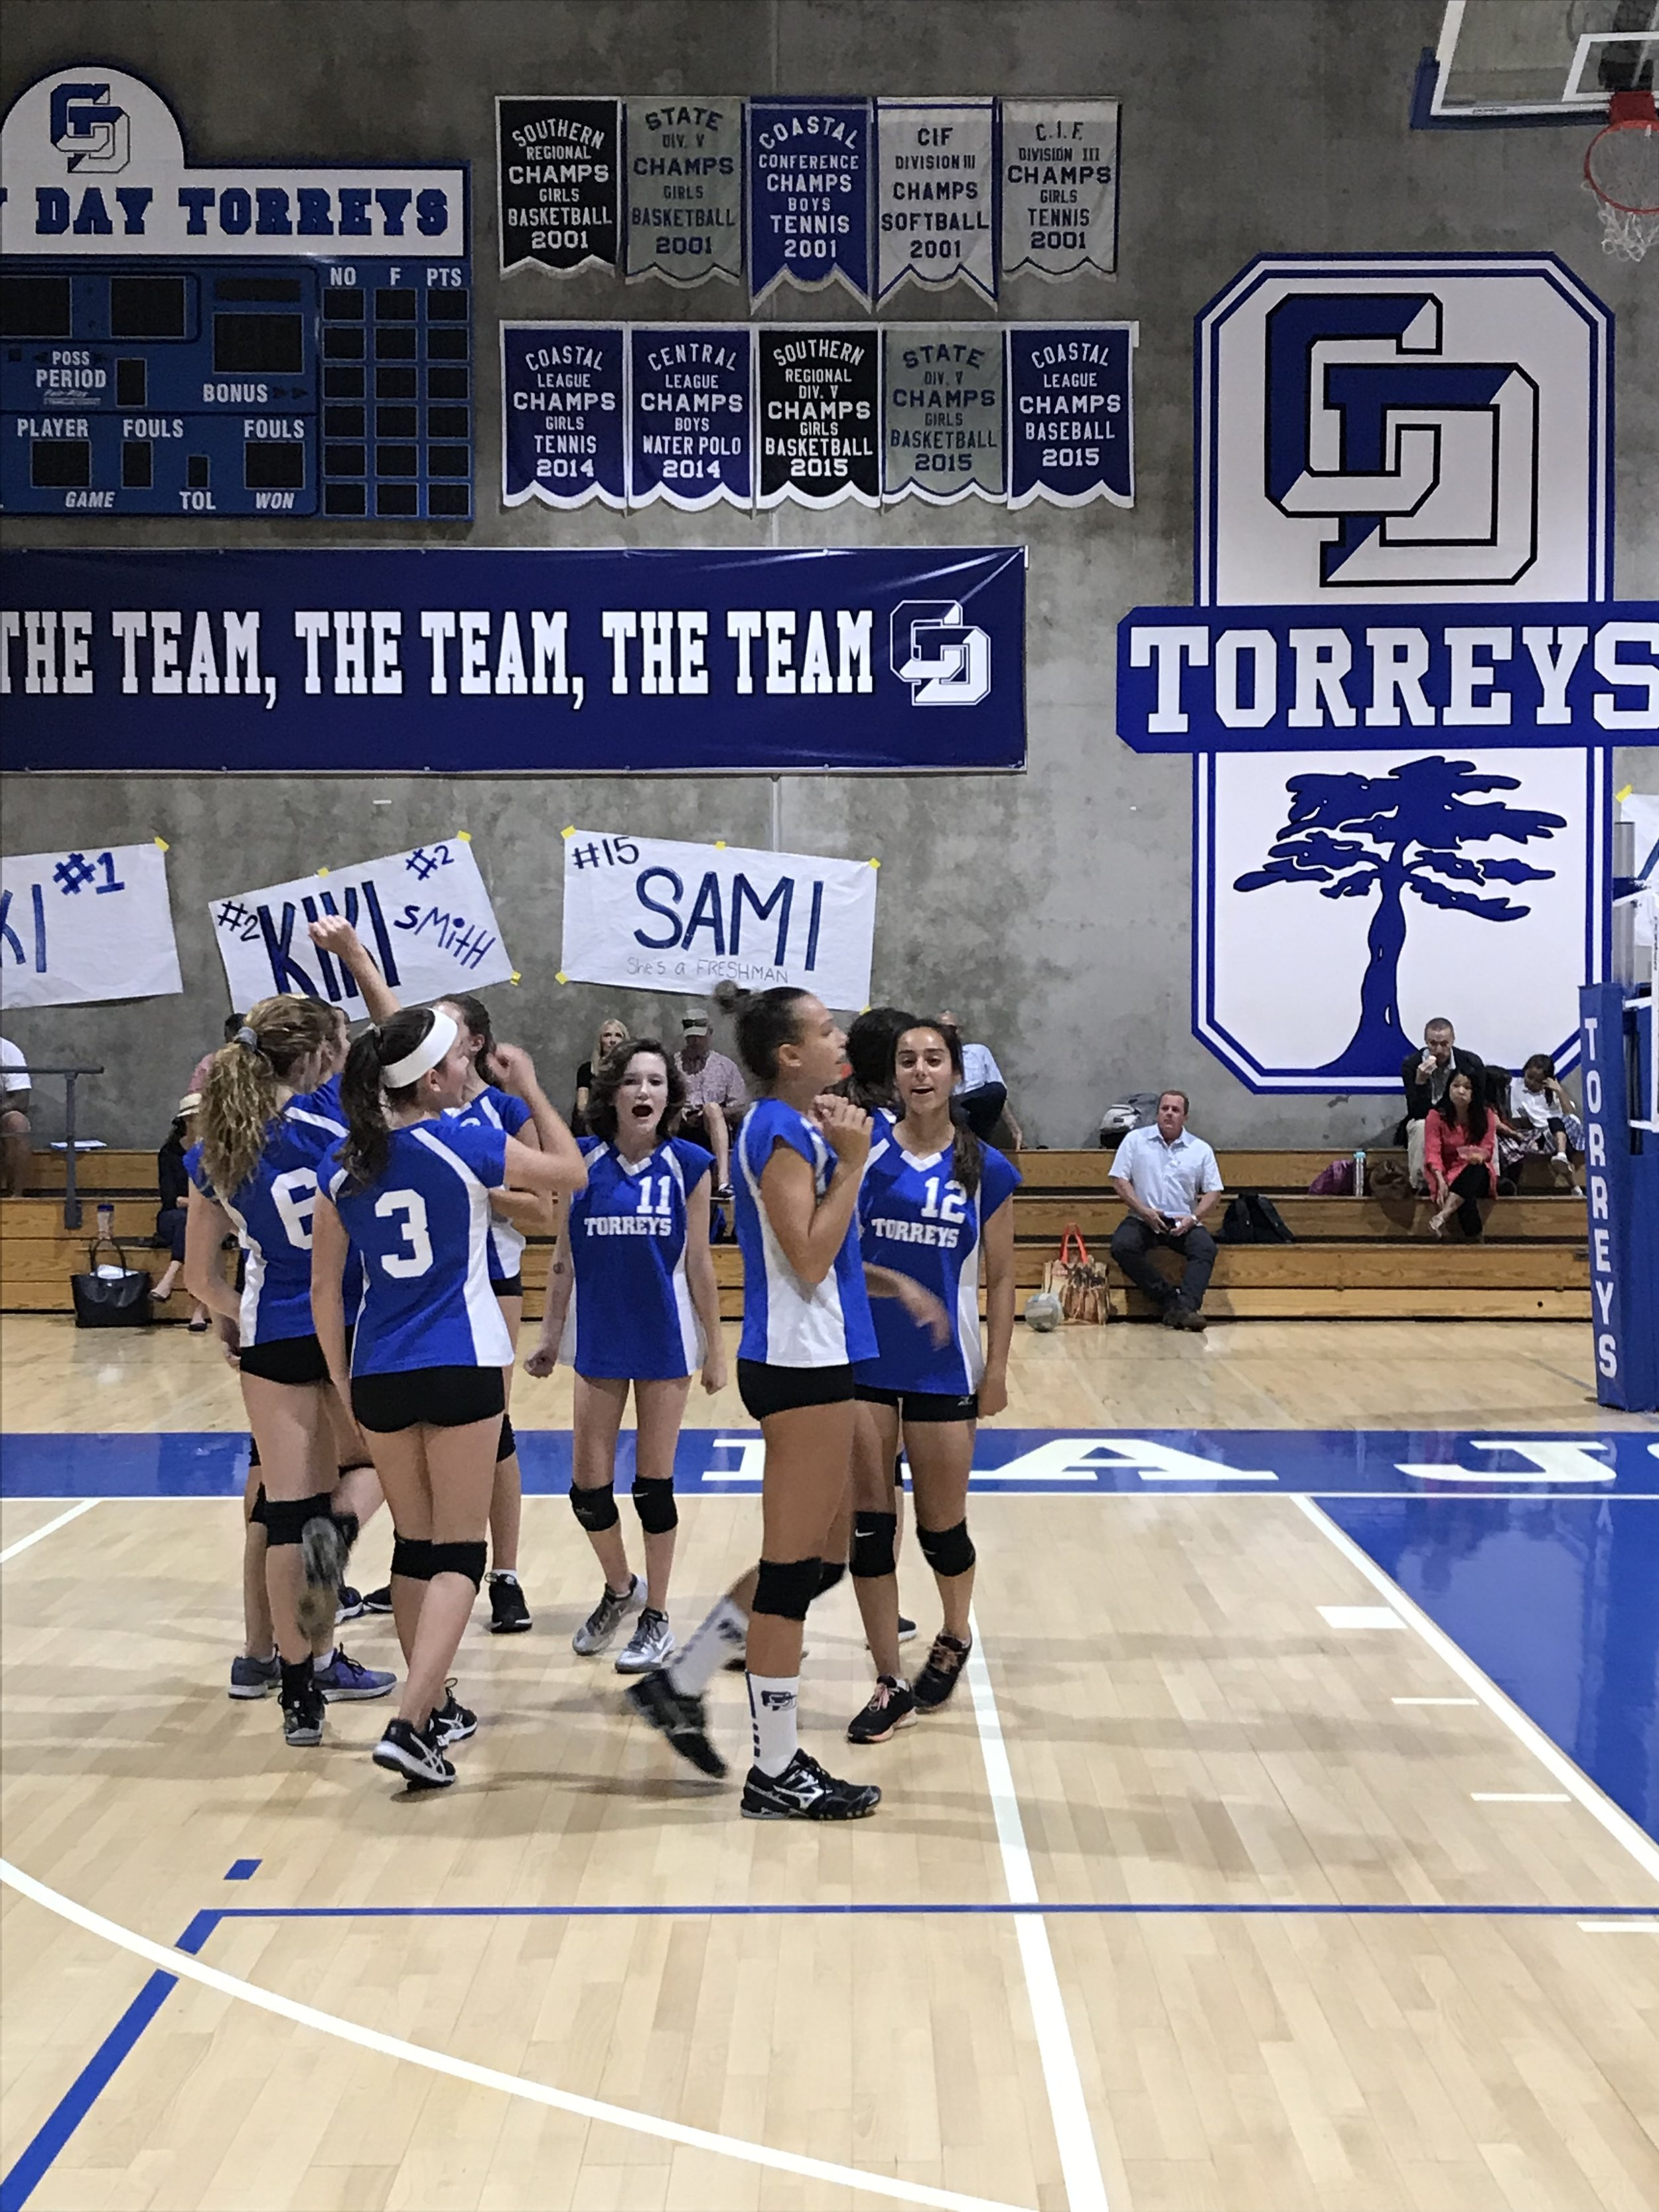 The Lady Torreys won vs. Christian, 25-11, 25-19. Christian put up a great fight!